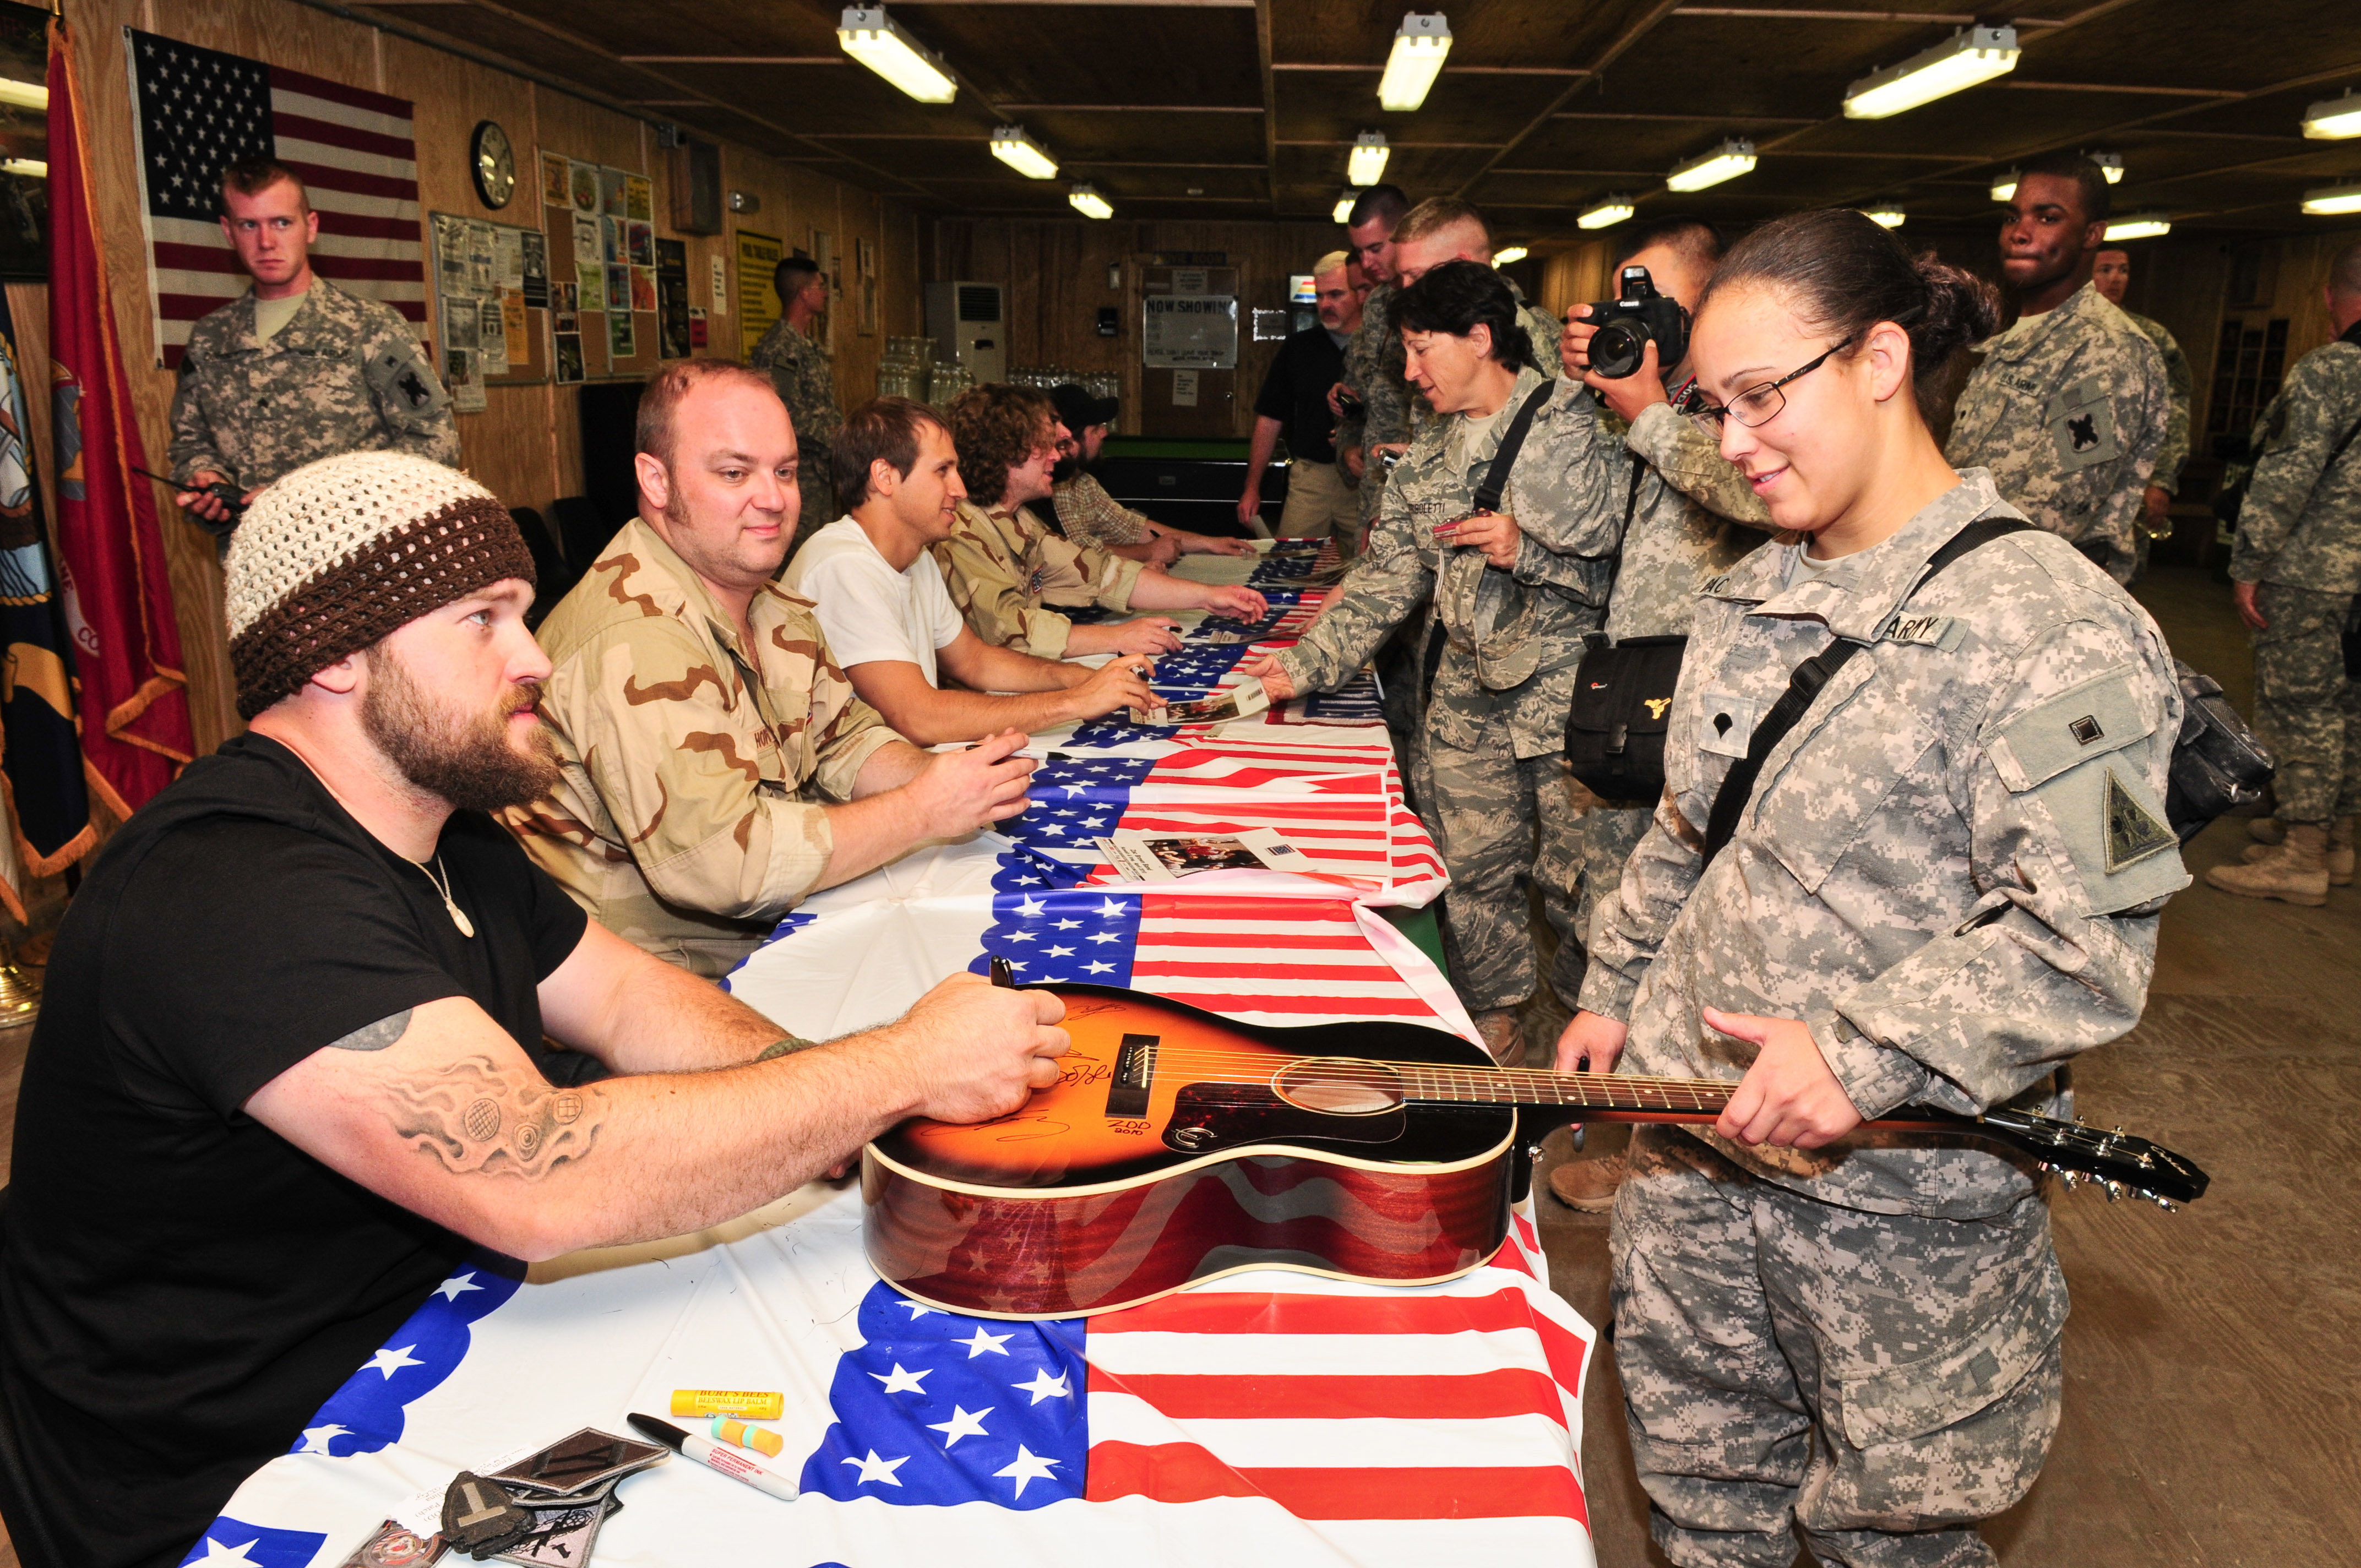 Zac brown band bonus pics united service organizations in baghdad iraq on april 15 2010 during the uso meet and greet at camp striker brown and his band mingled with troops and extended their heartfelt m4hsunfo